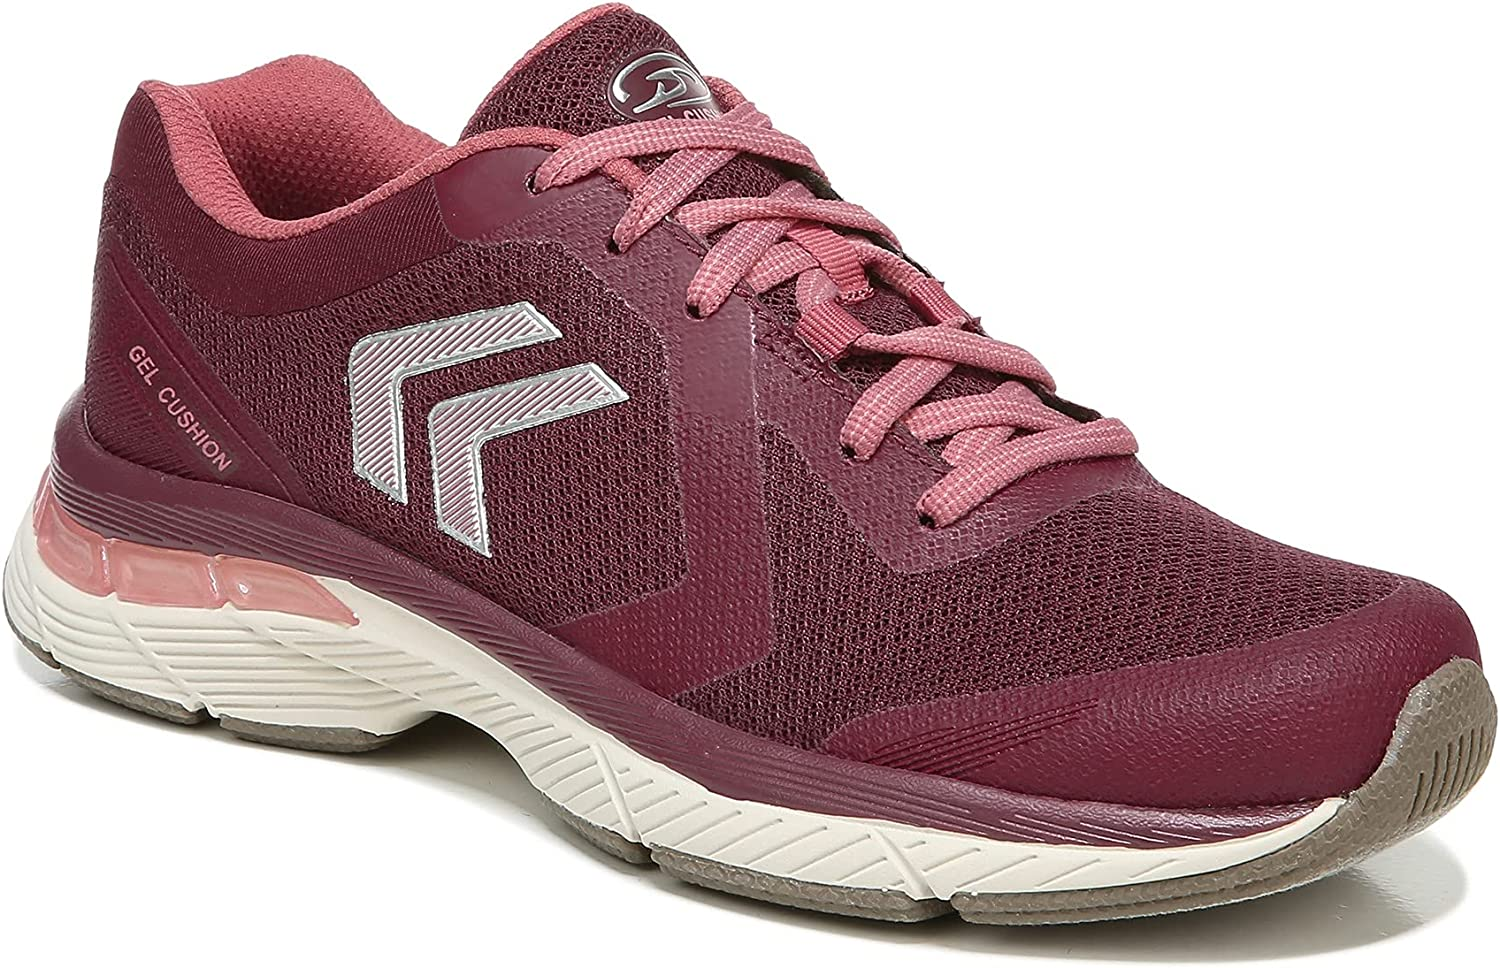 Dr. Scholl's Challenge the lowest price Shoes Women's Point to Popular standard Sneaker The